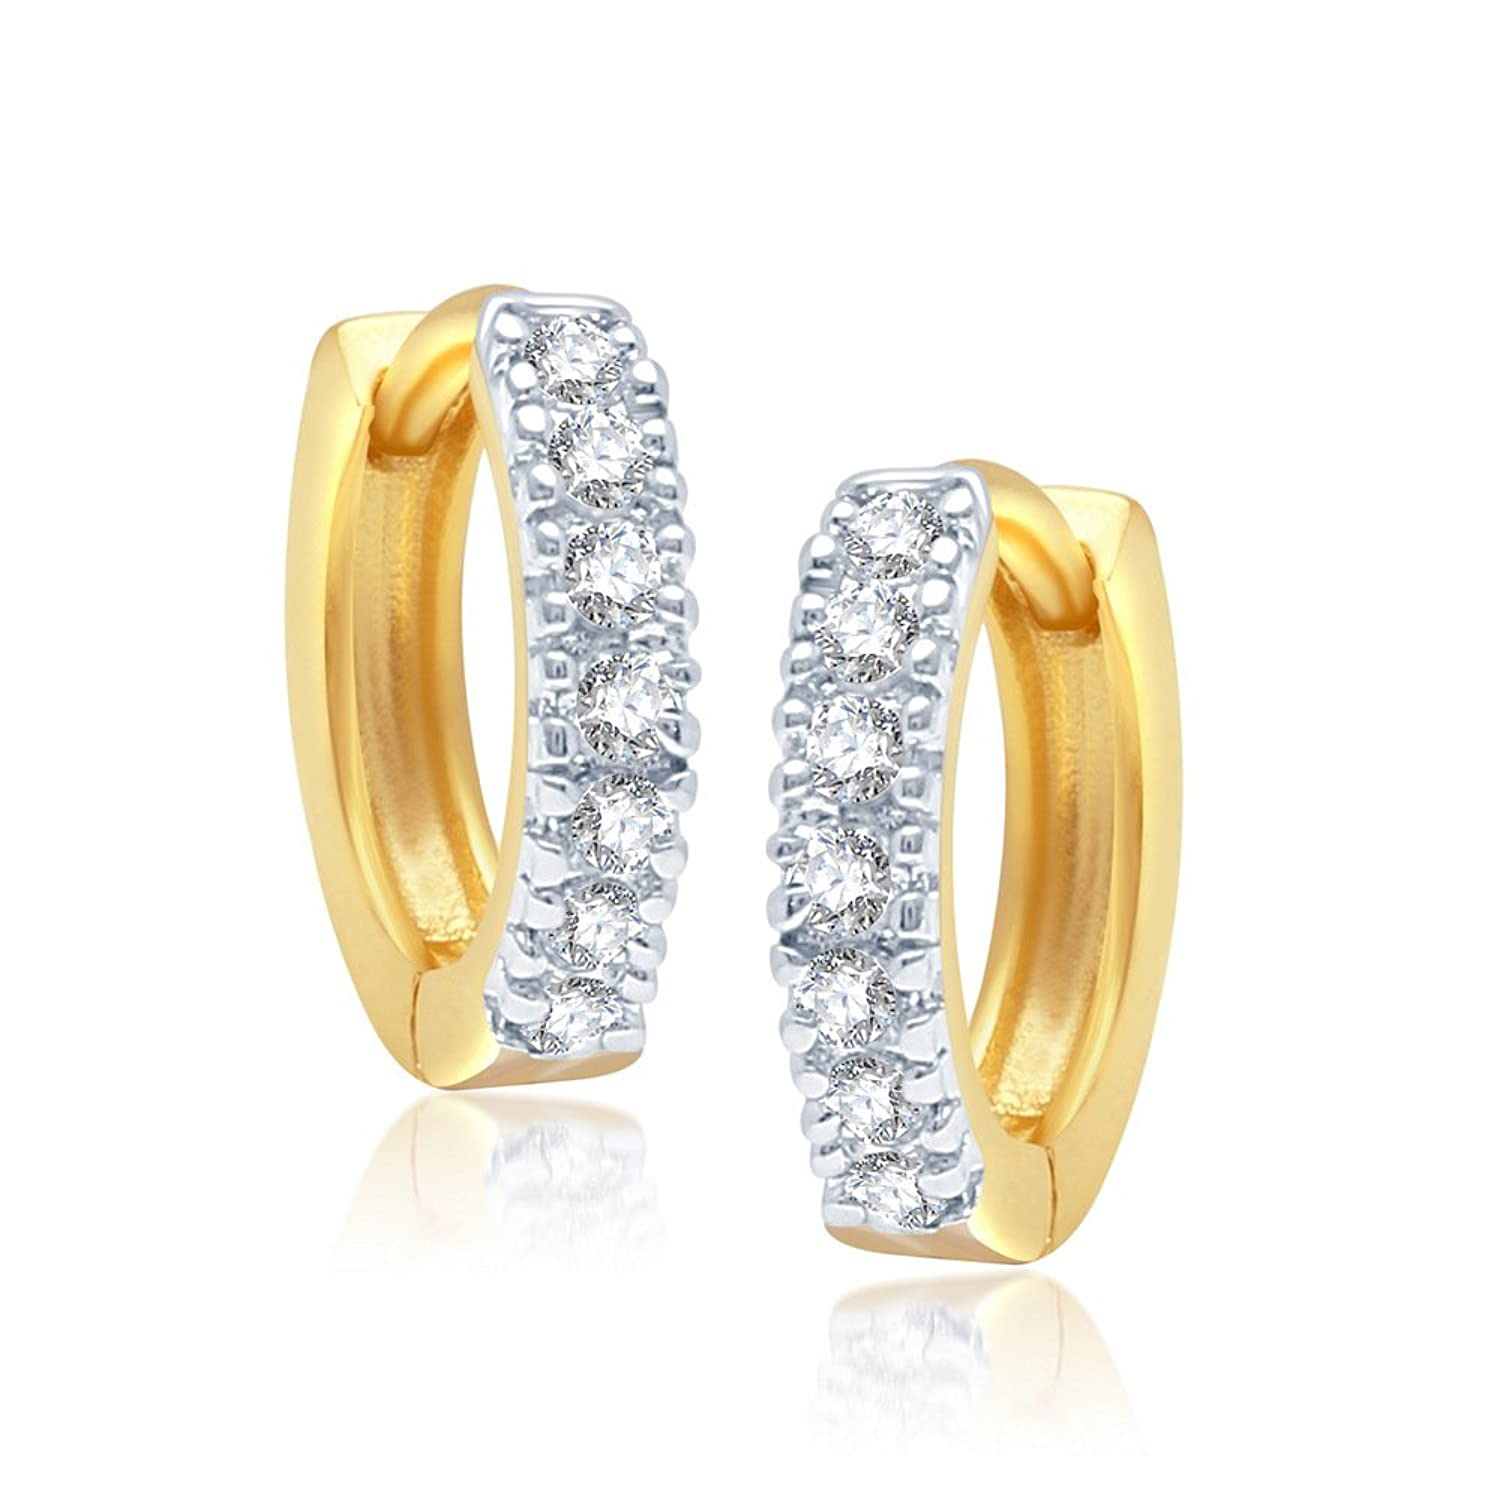 twist earrings offers s jewellery youme stud gold women a jewelry womens of golden range yellow